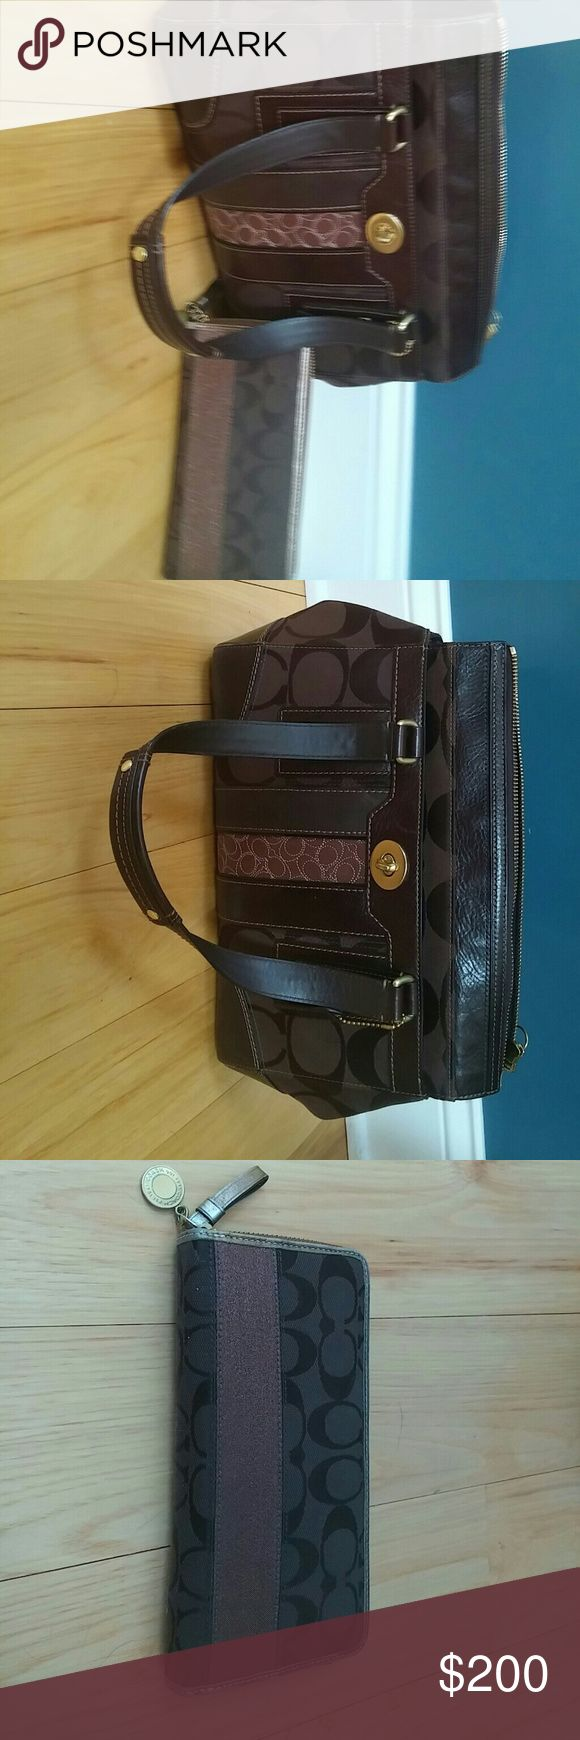 coach luggage outlet wlaf  Coach pocketbook